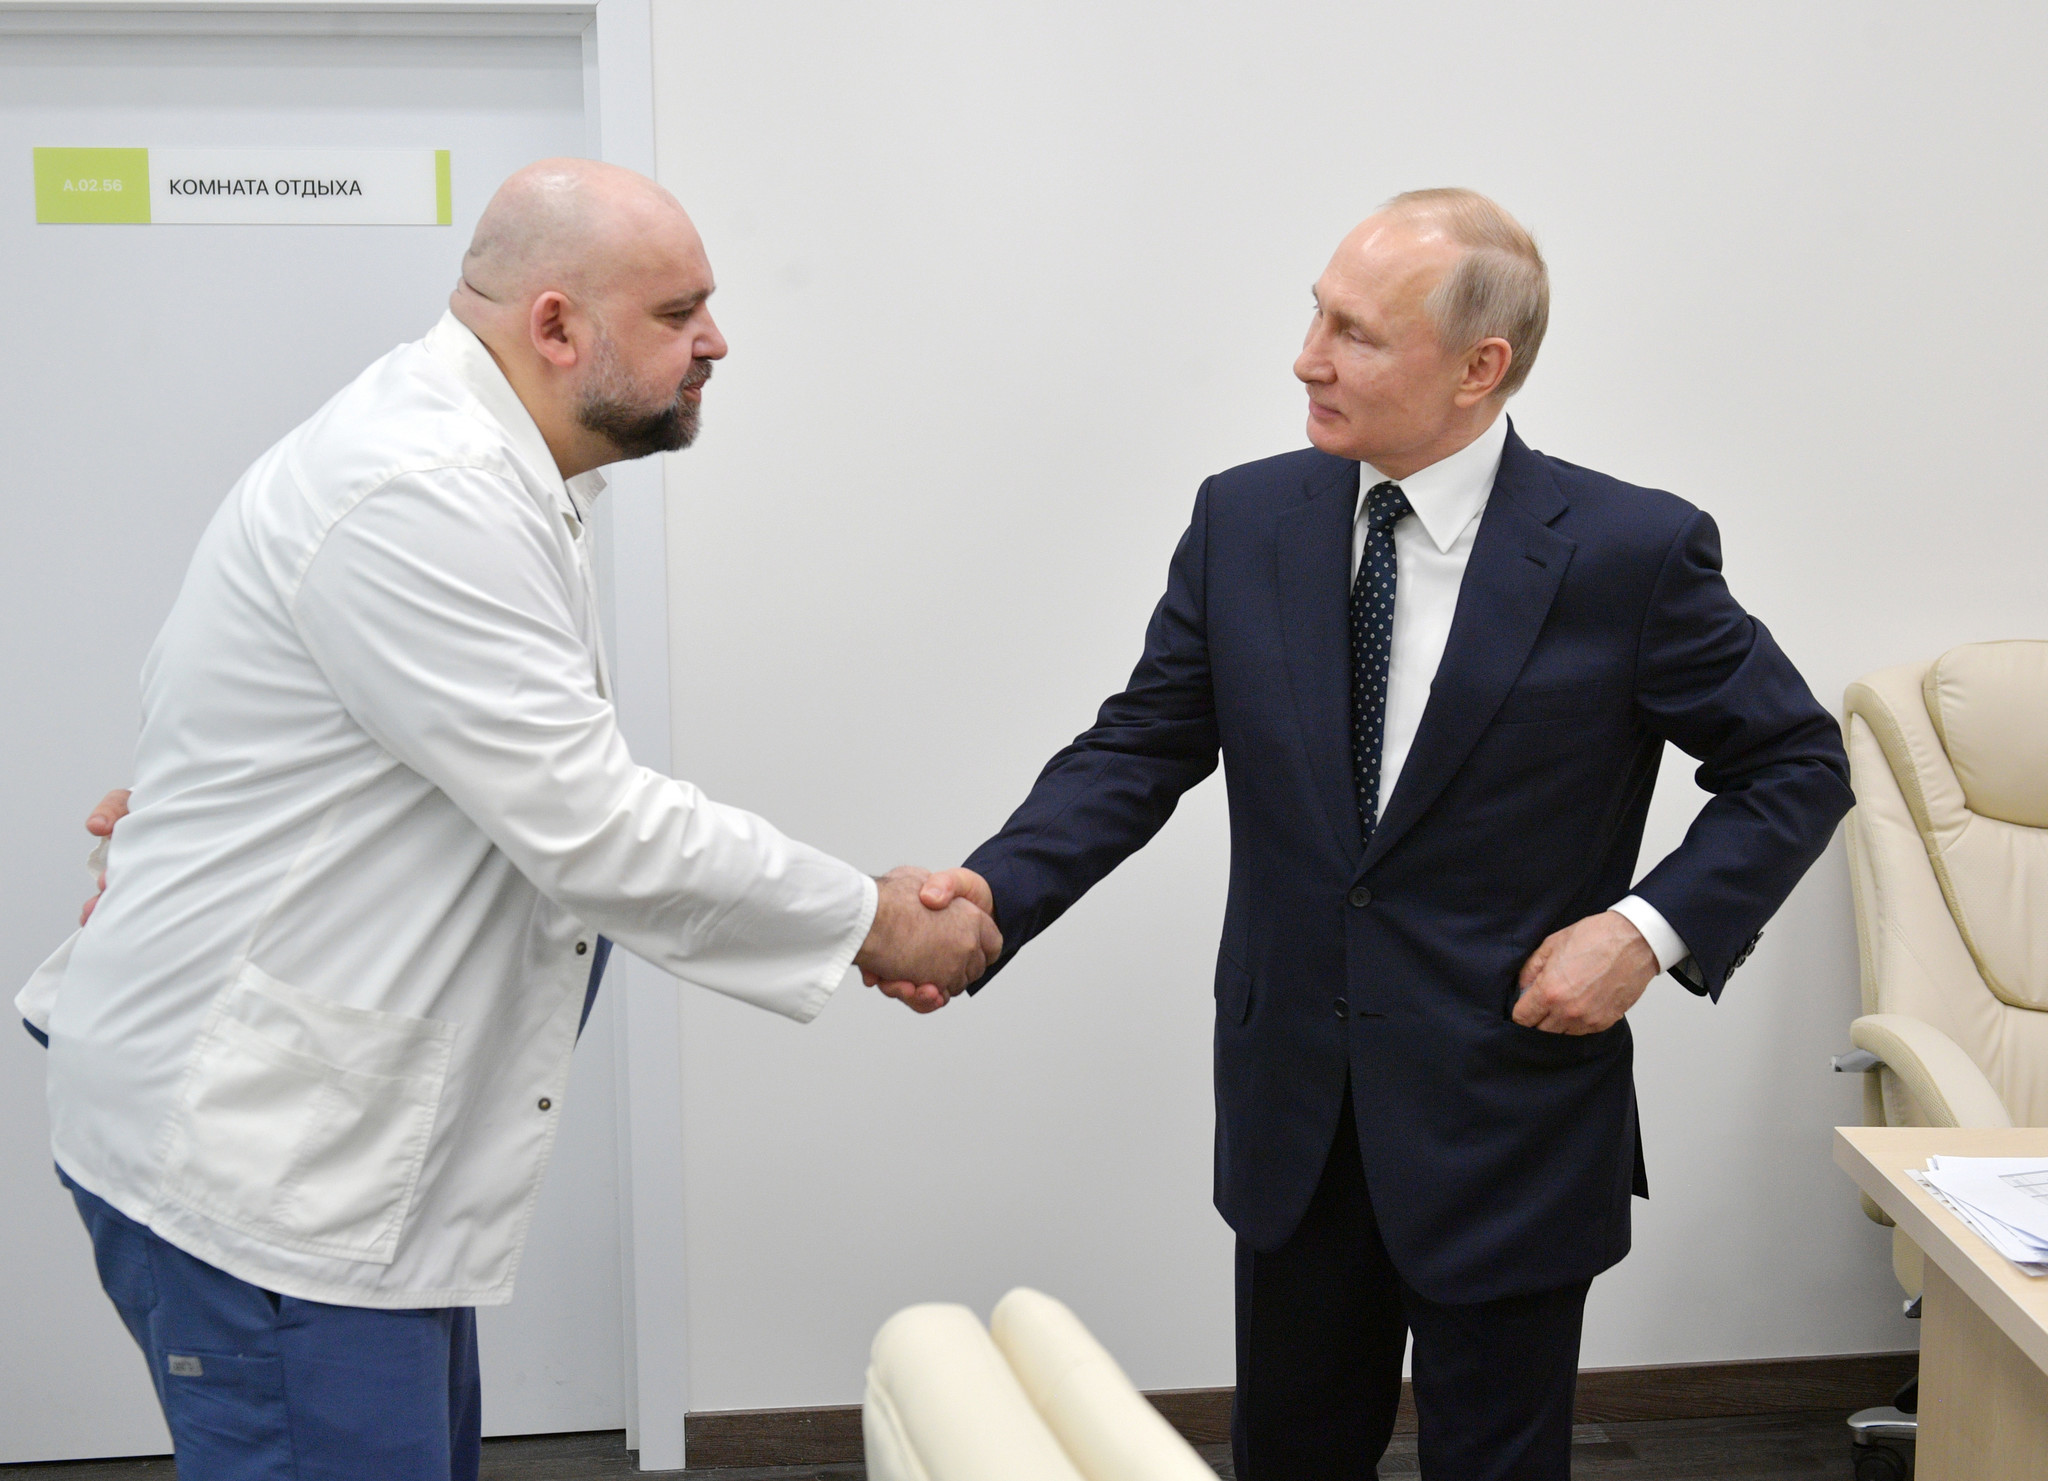 Russian doctor says he has tested positive for coronavirus days after meeting with Vladimir Putin